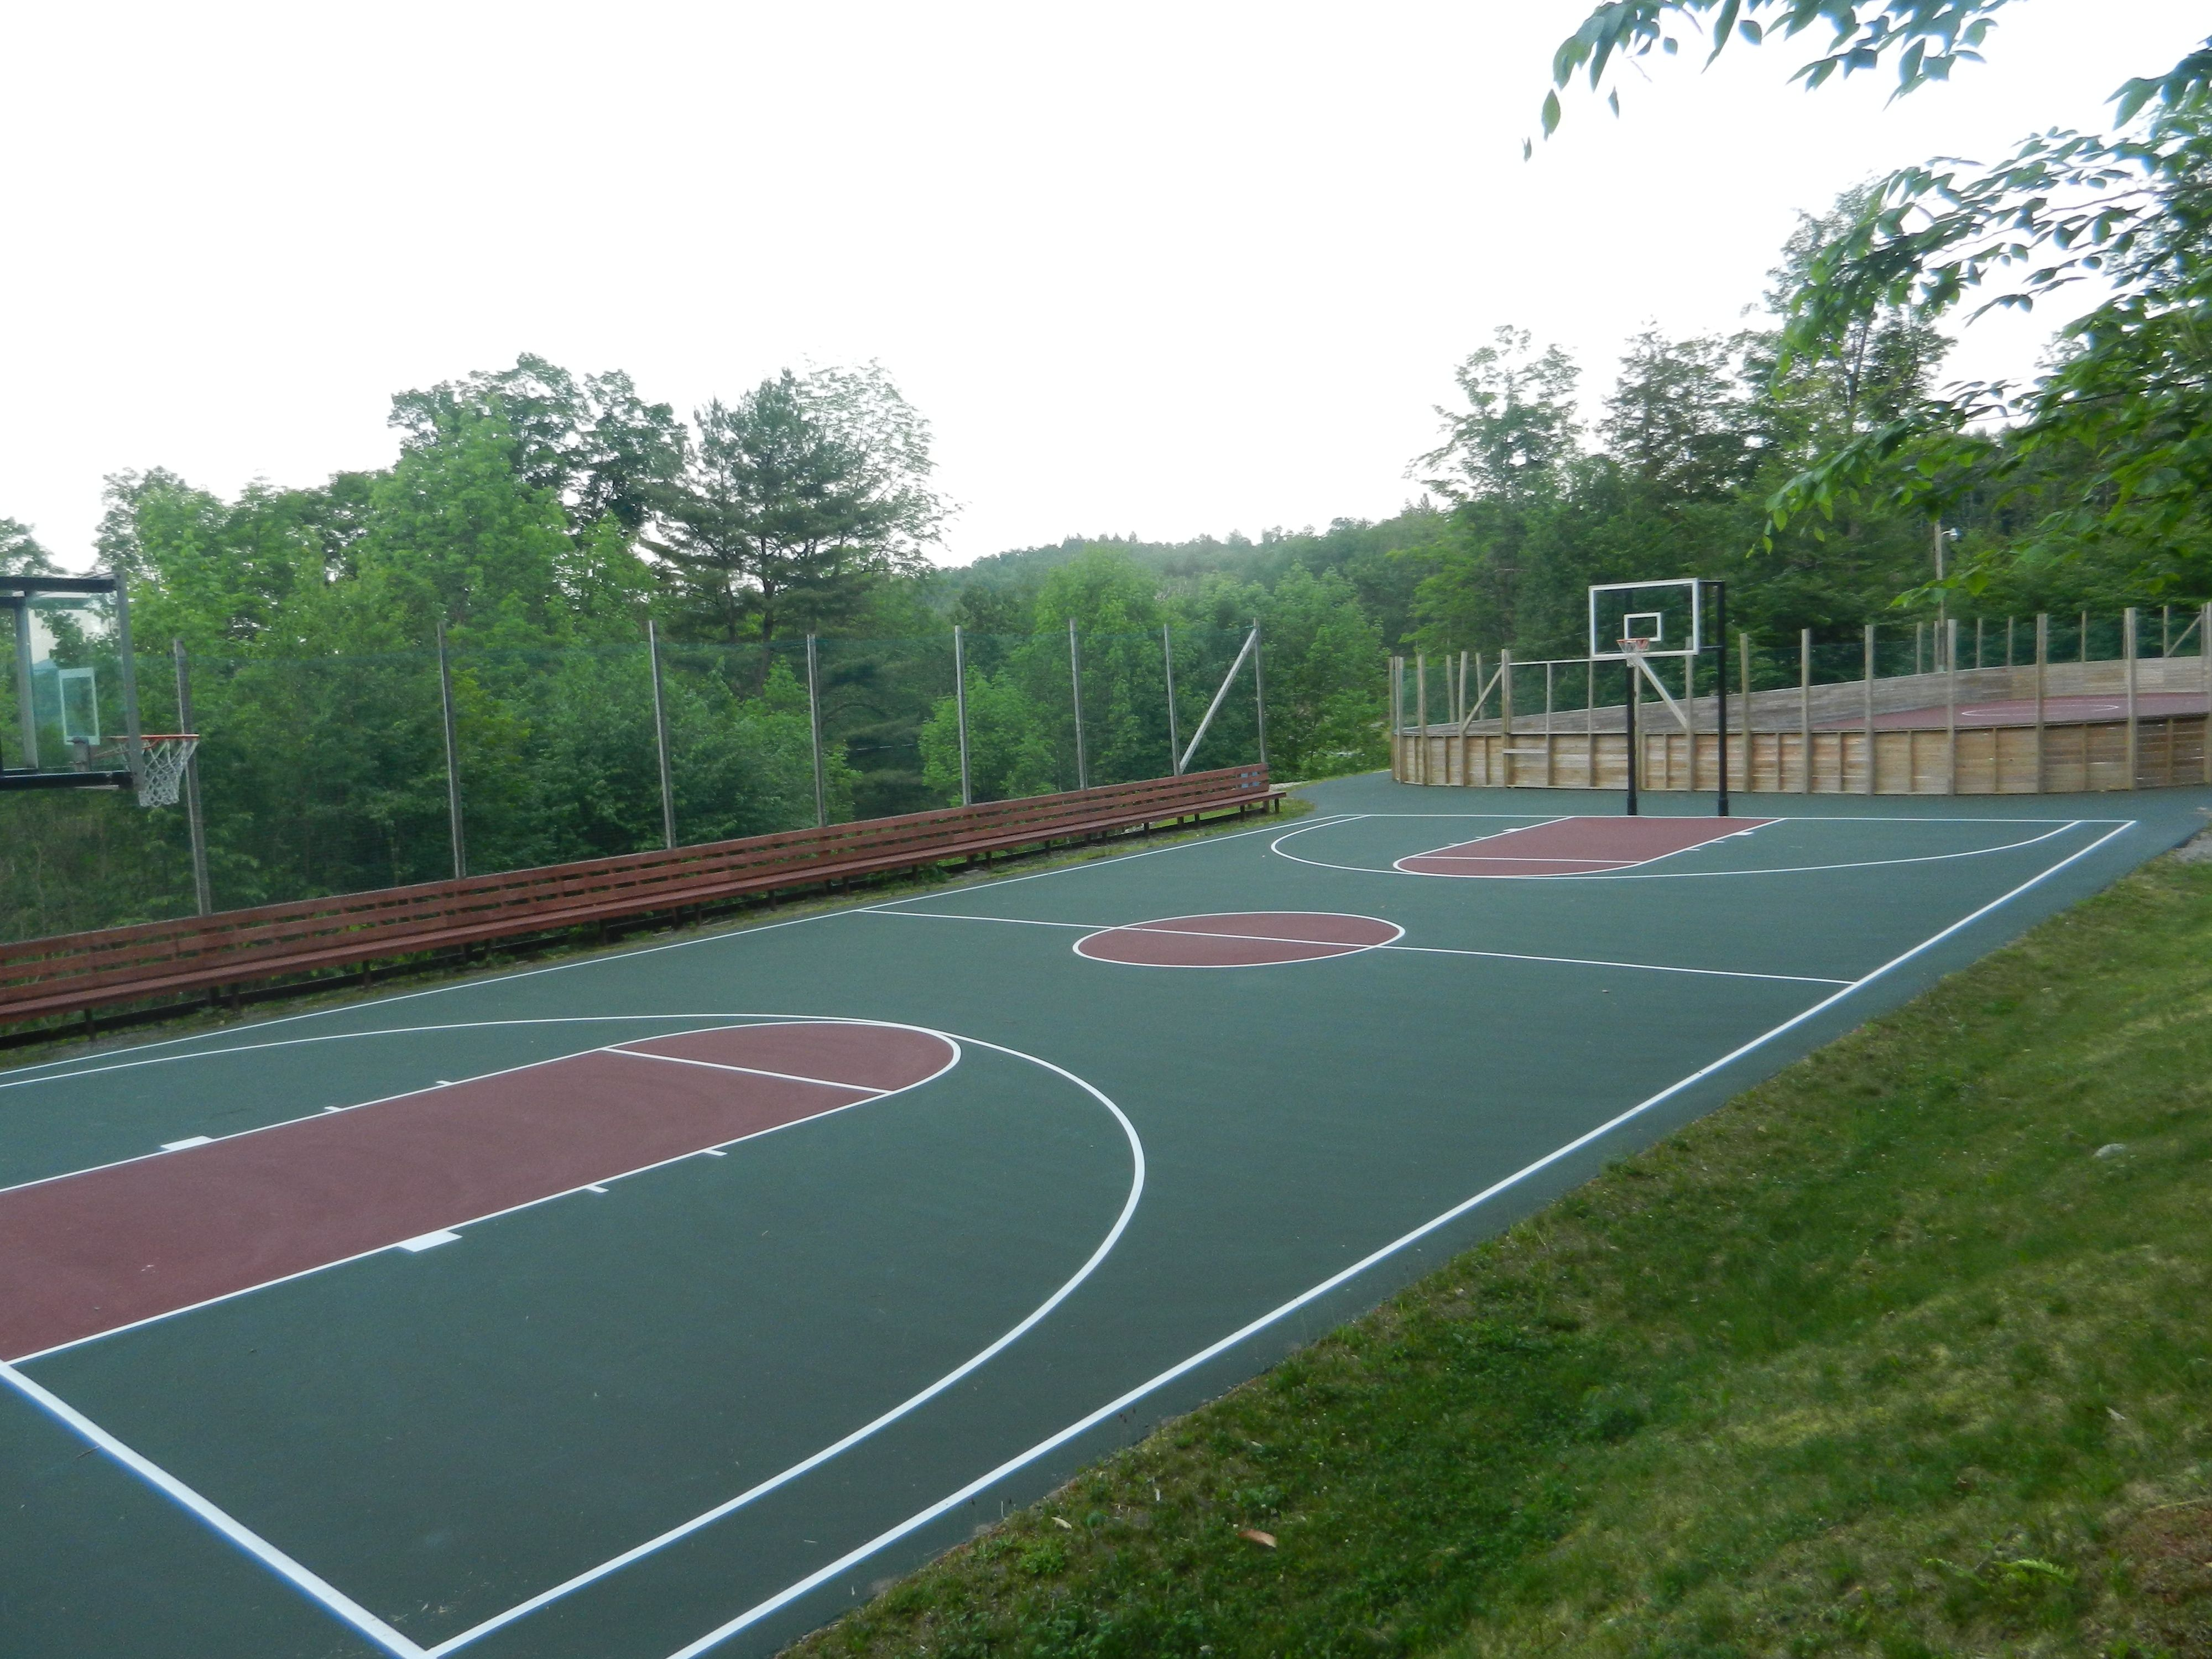 Beautiful Outdoor Basketball Court And Hockey Rink At Camp Southwoods In Paradox Ny Outdoor Basketball Court Tennis Court Outdoor